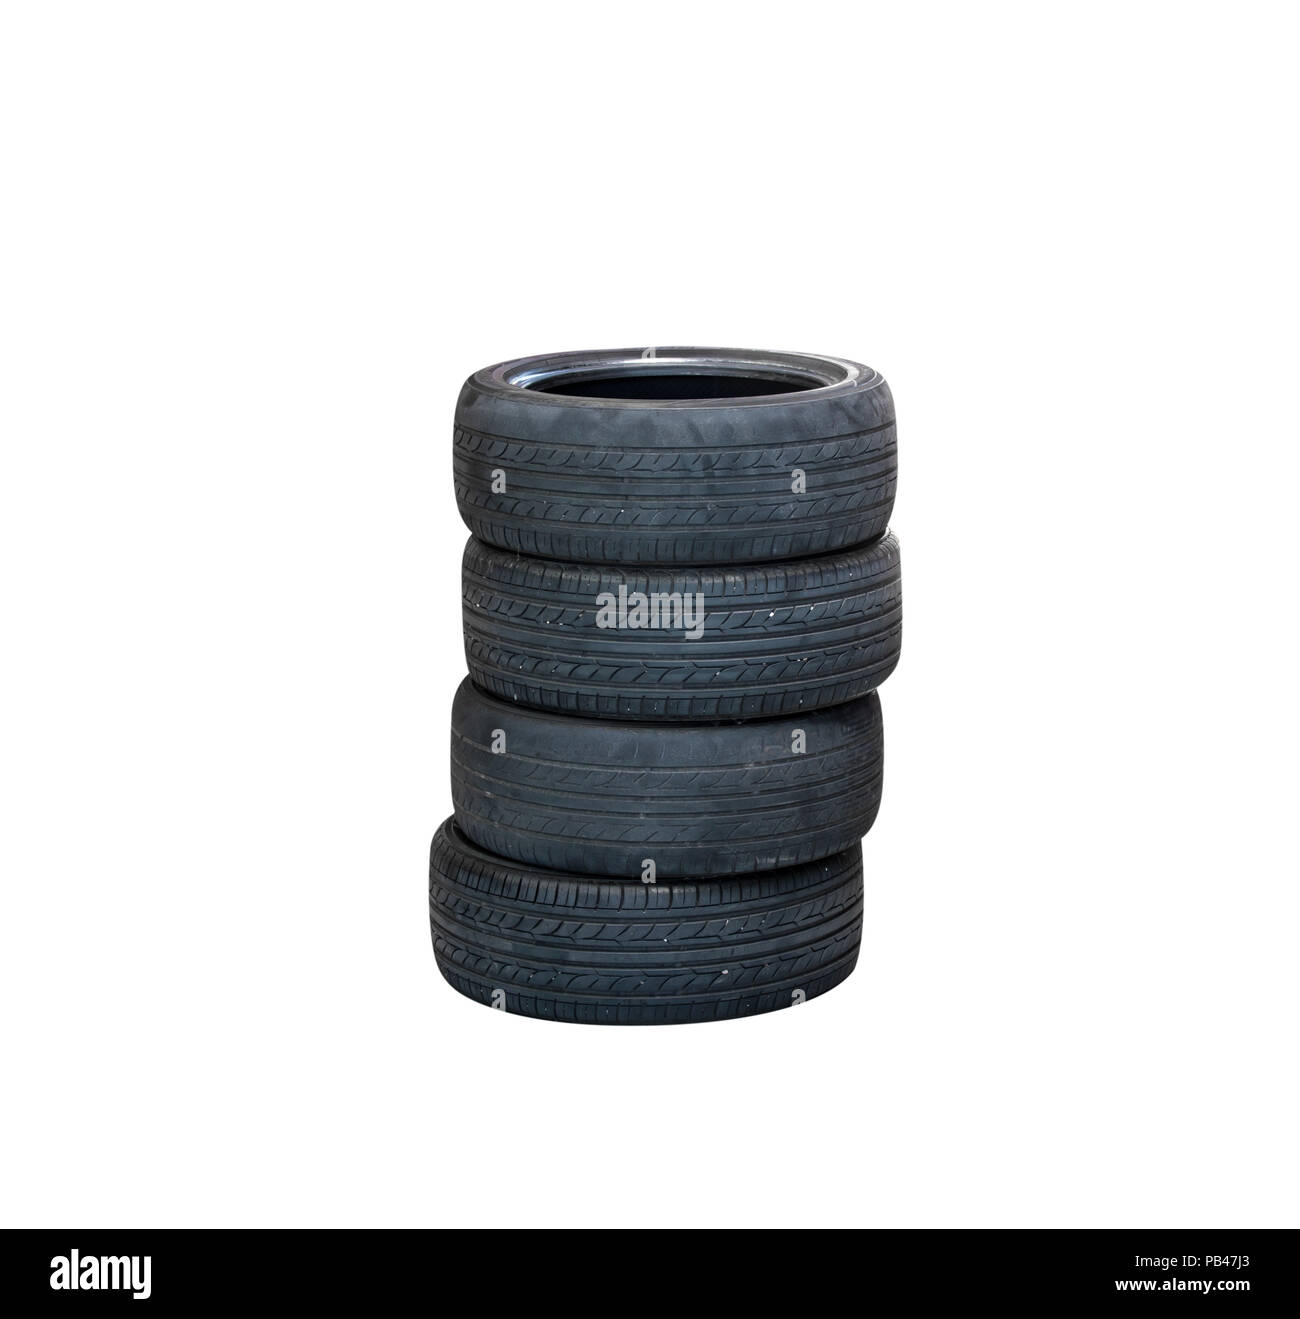 Old tires stacked, isolated on white background - Stock Image